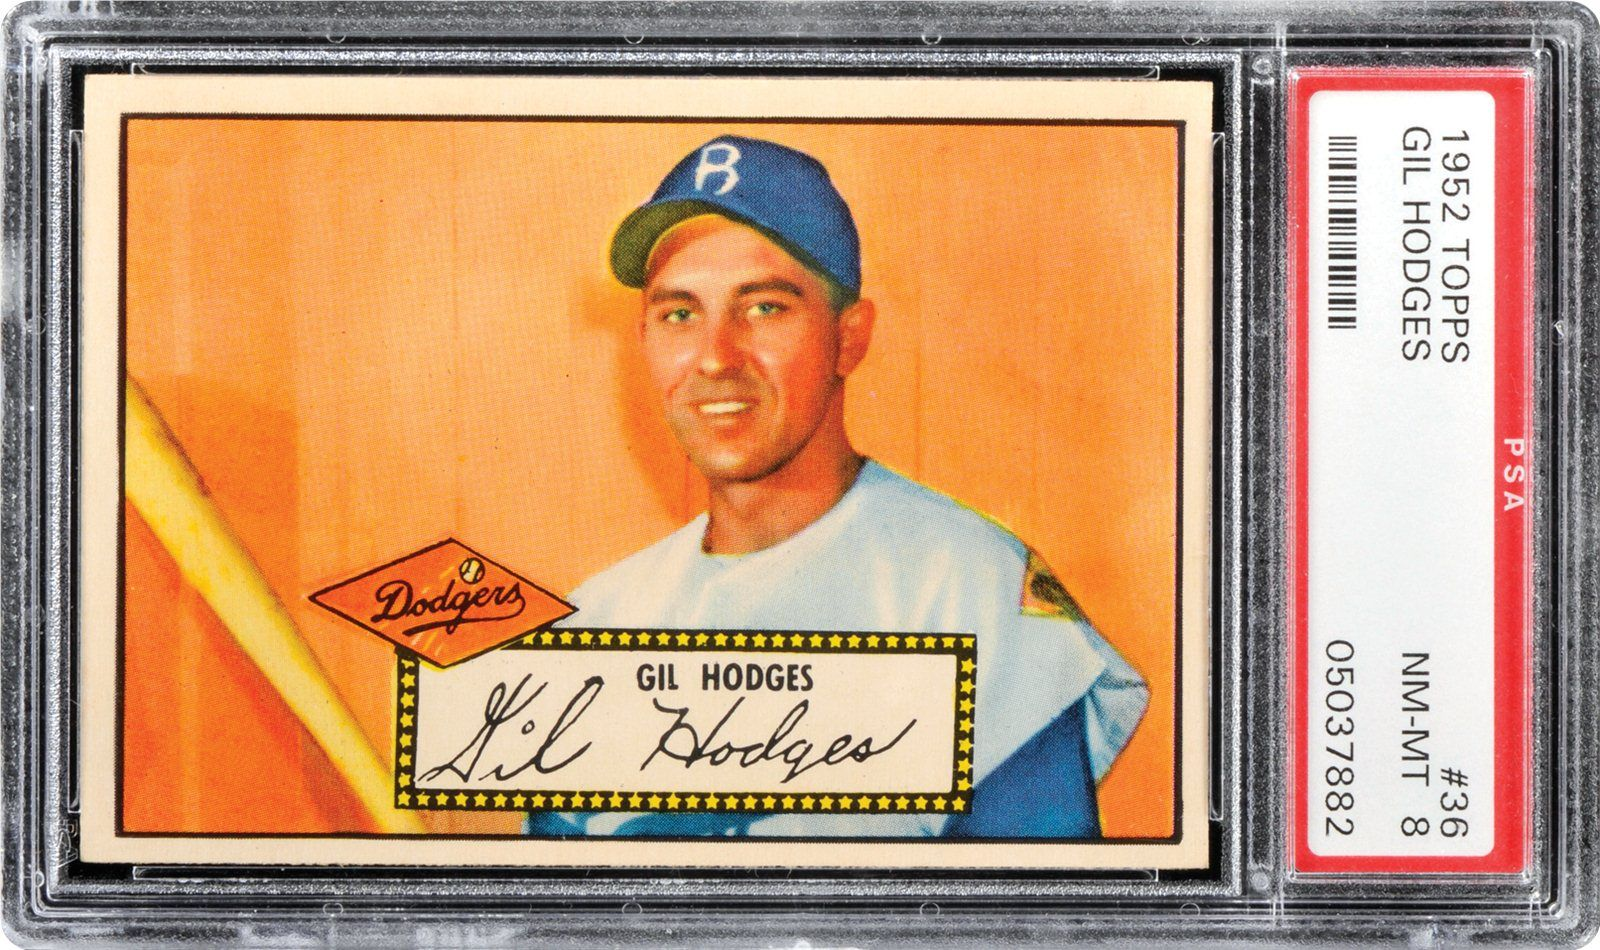 1952 Topps Gil Hodges Psa Cardfacts